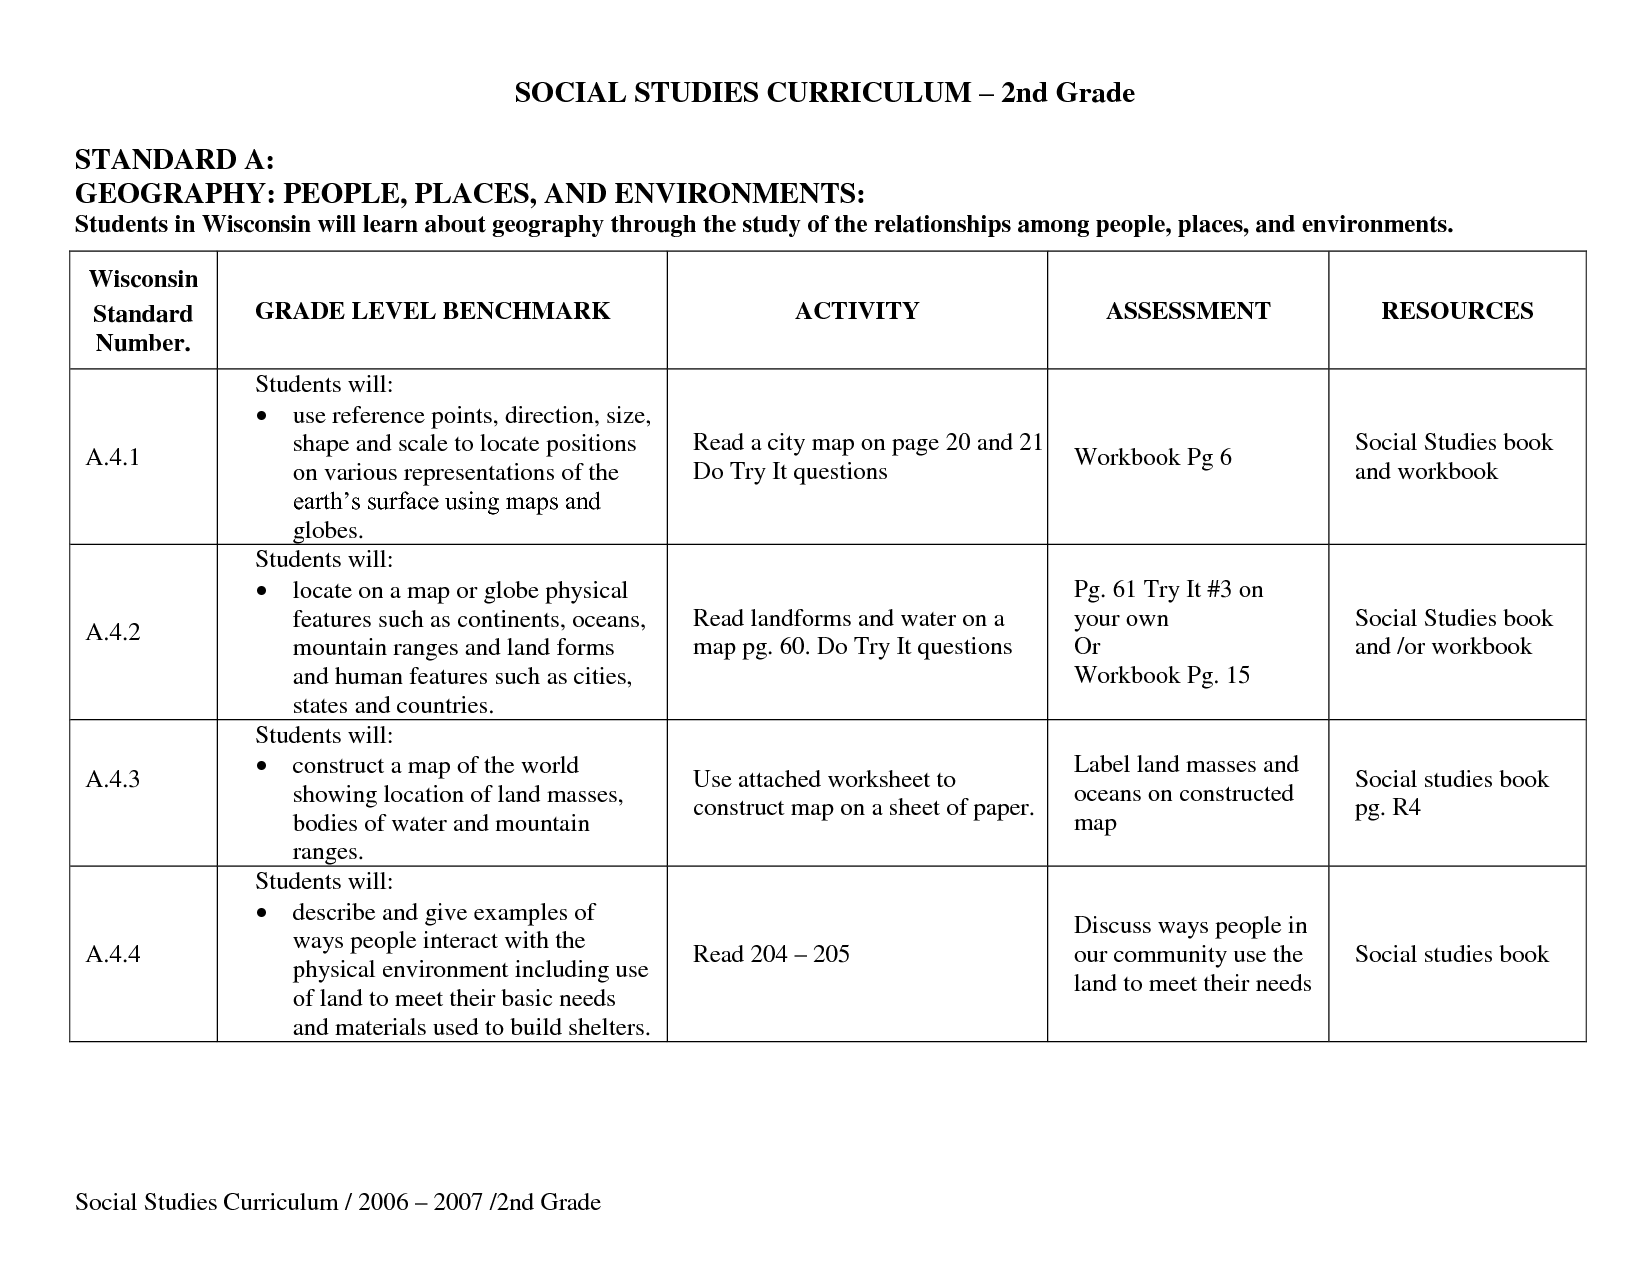 Worksheets 2nd Grade Social Studies Worksheets social studies worksheets for 5th grade plustheapp of printables studies